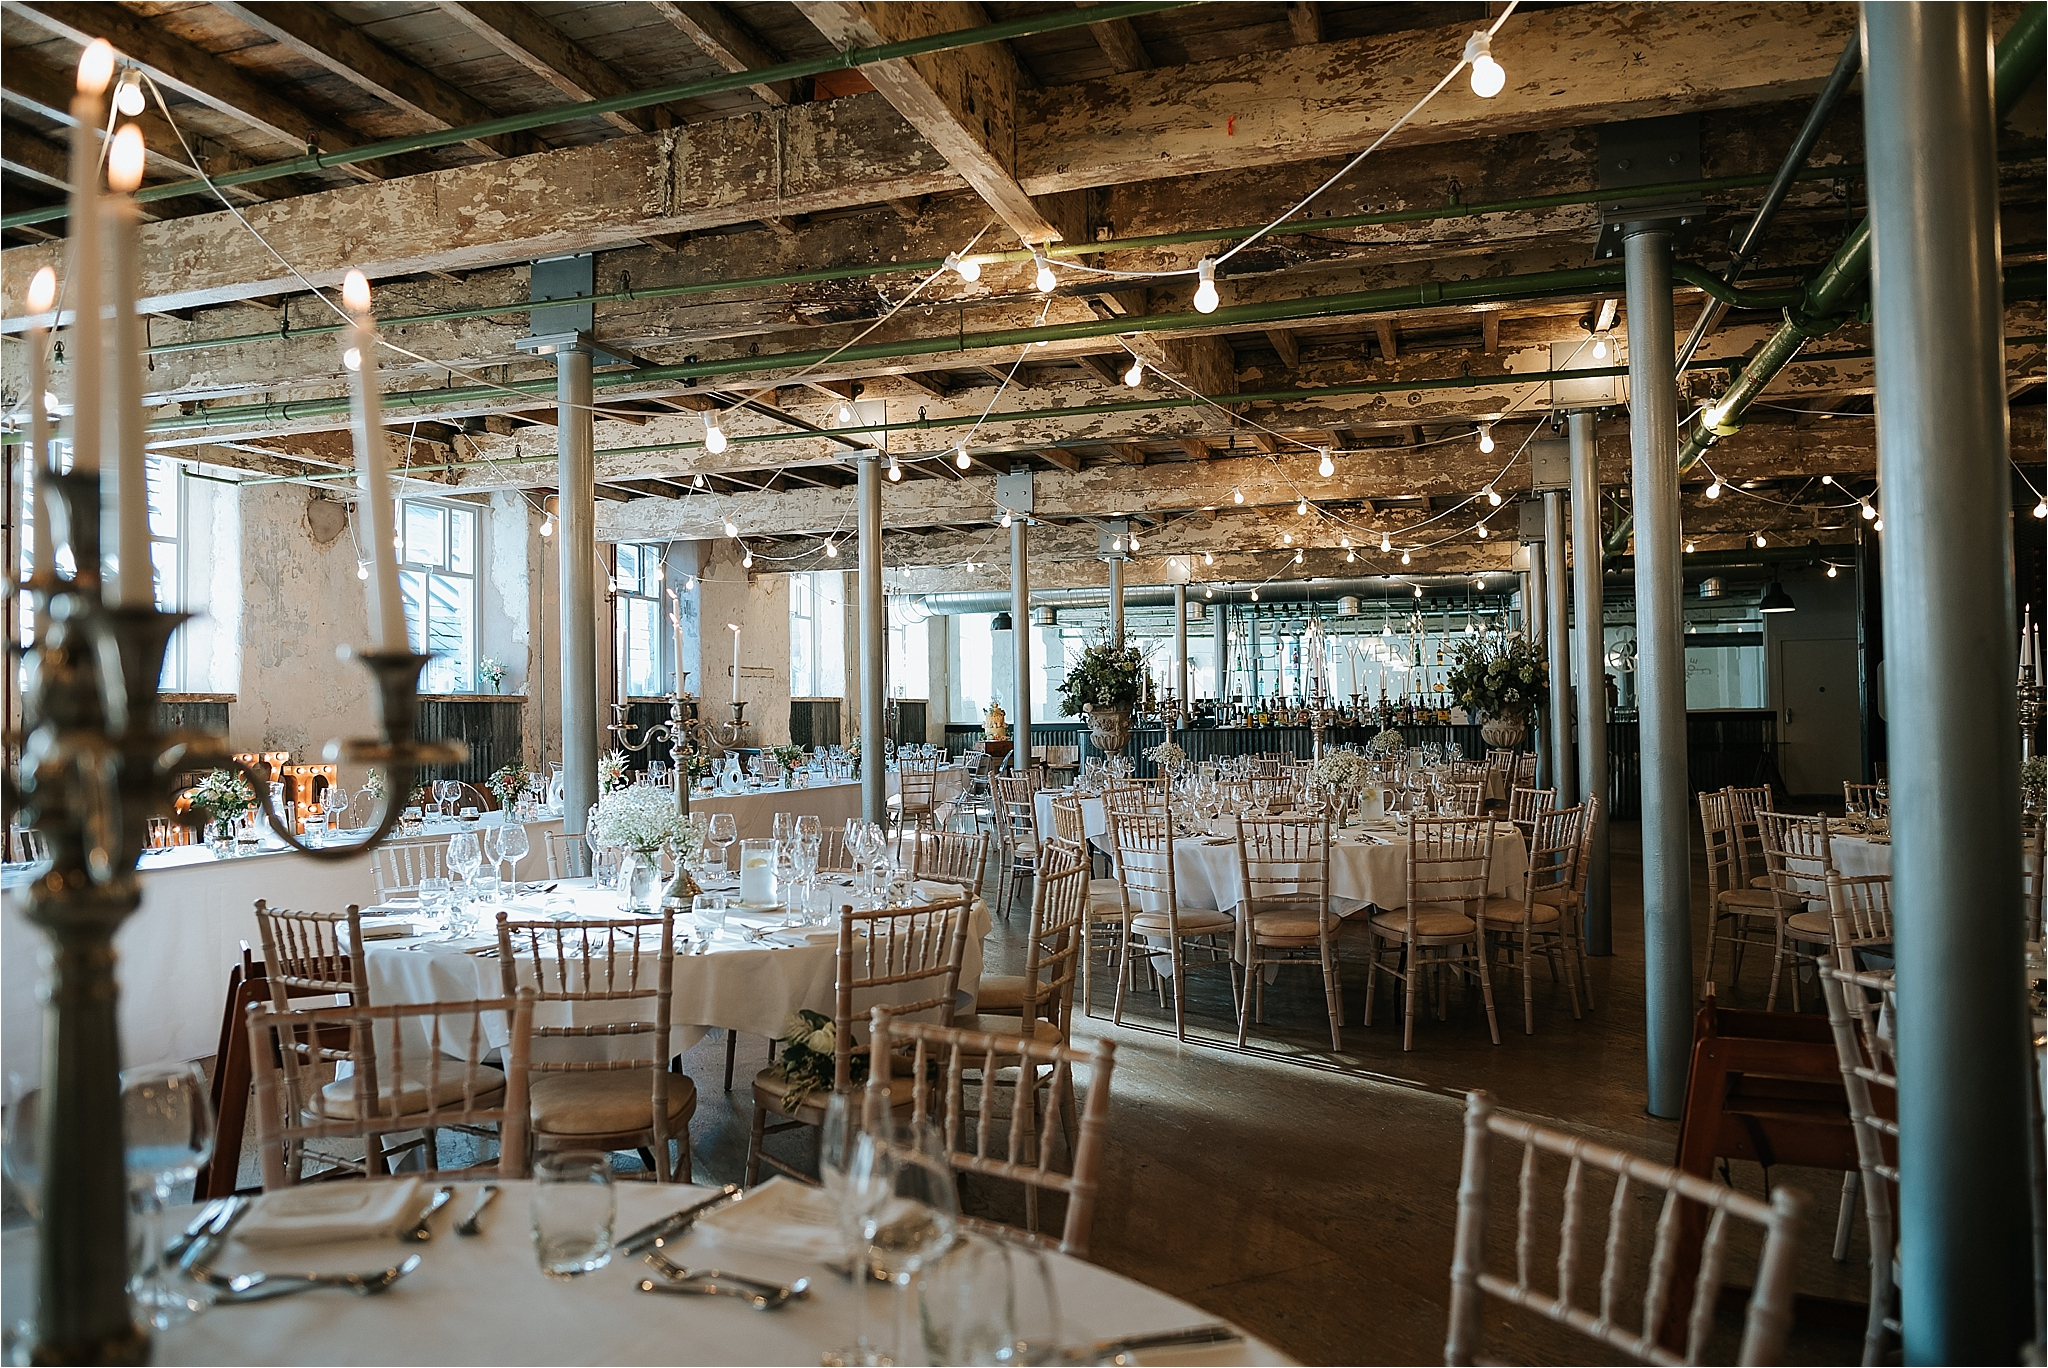 Holmes Mill set up for a wedding